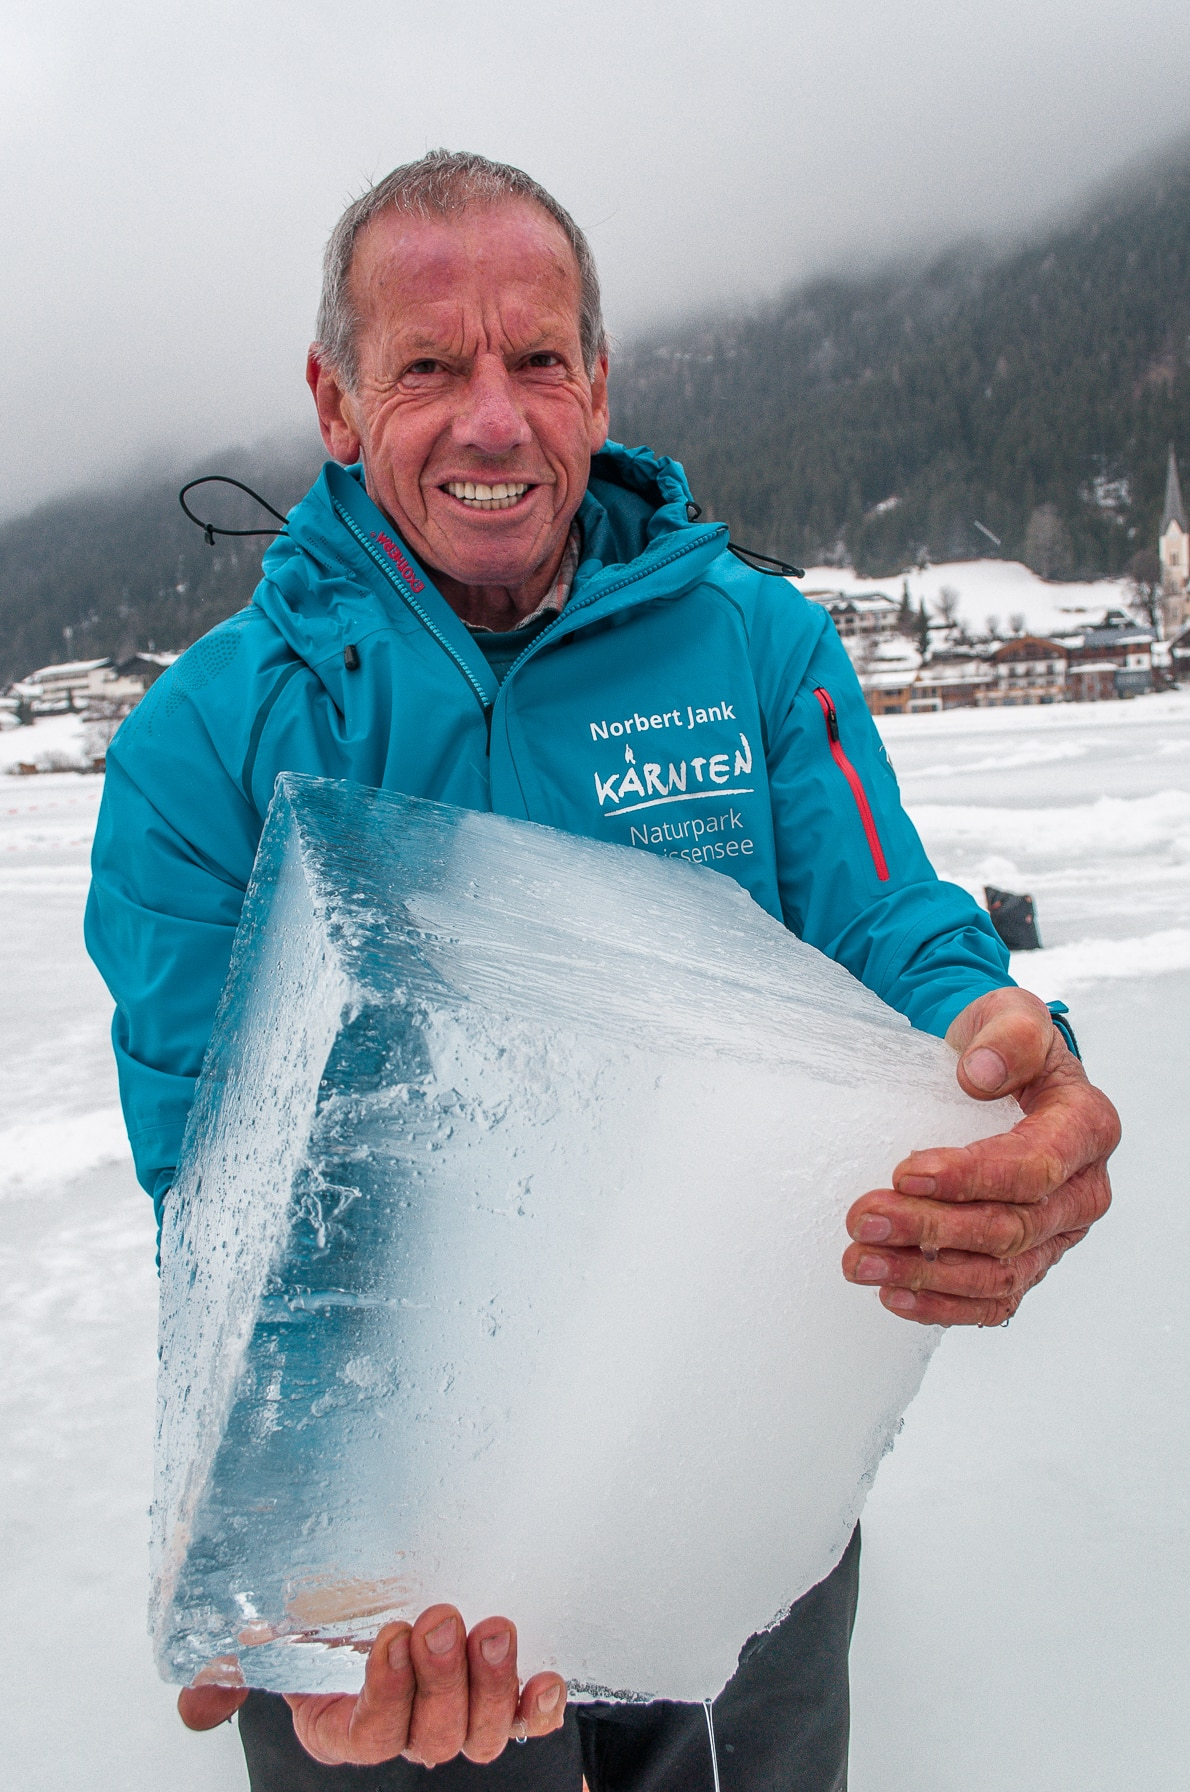 Eismaster Norbert Jank with some of Weissensee's finest frozen water